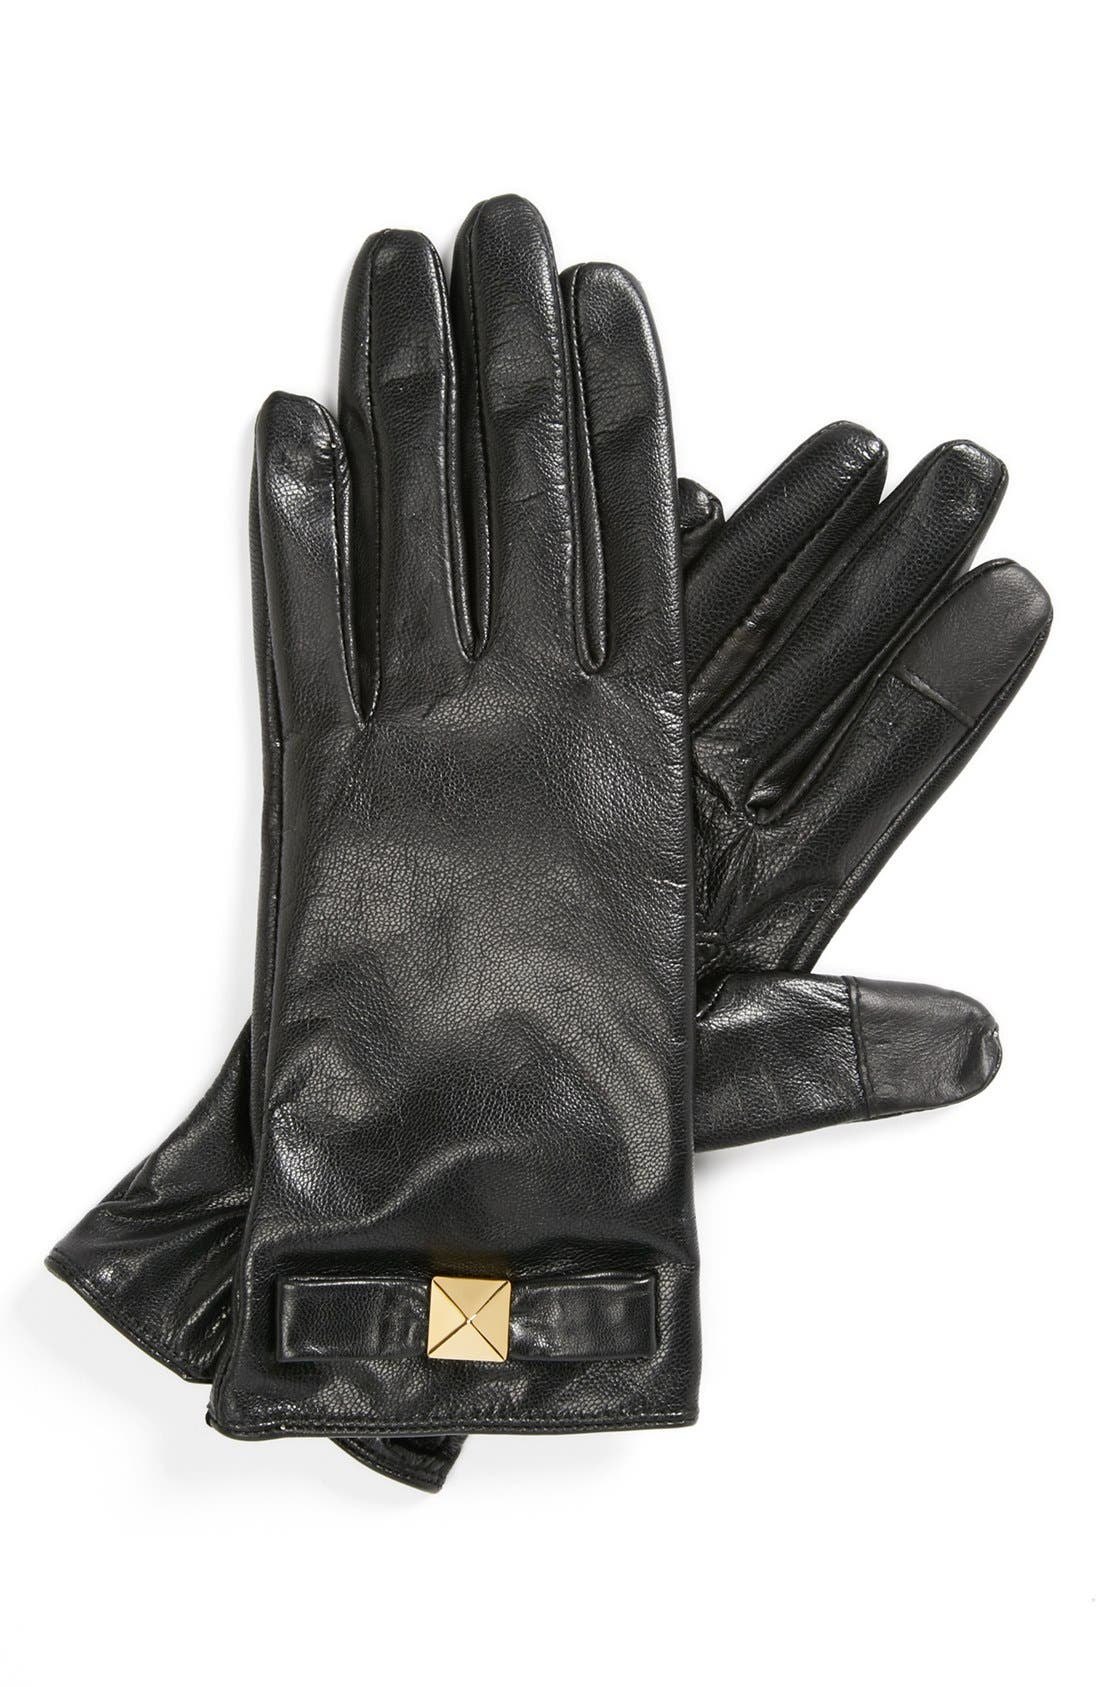 Alternate Image 1 Selected - kate spade new york 'pyramid bow' leather tech gloves